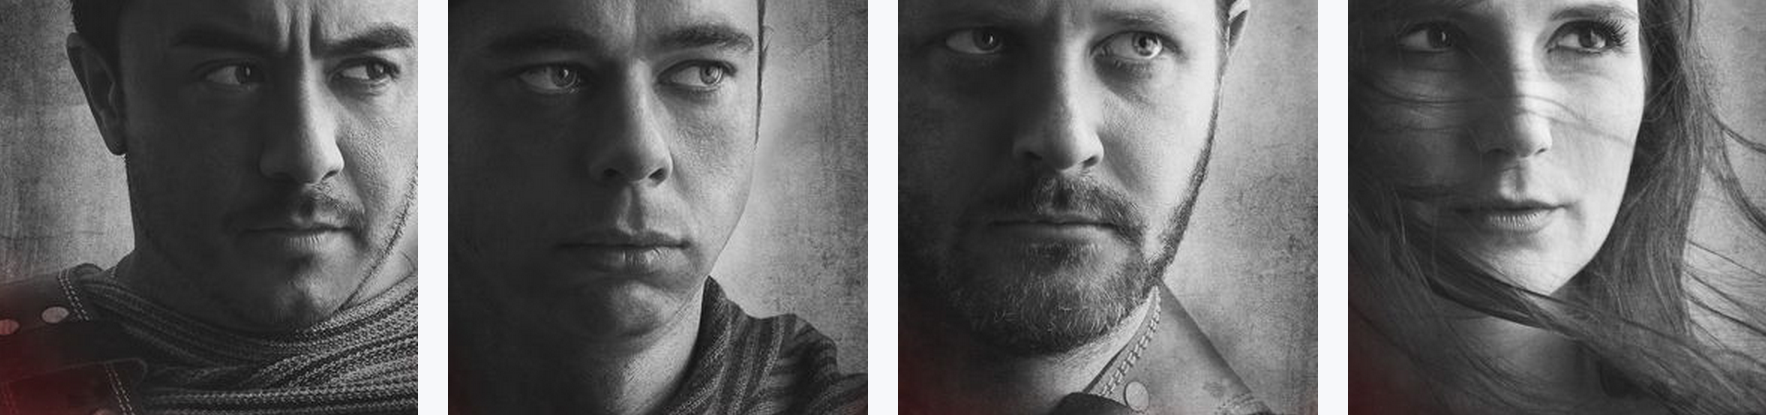 Creative Portrait Tutorial: Recreate Game Of Thrones Season 4 Portraits